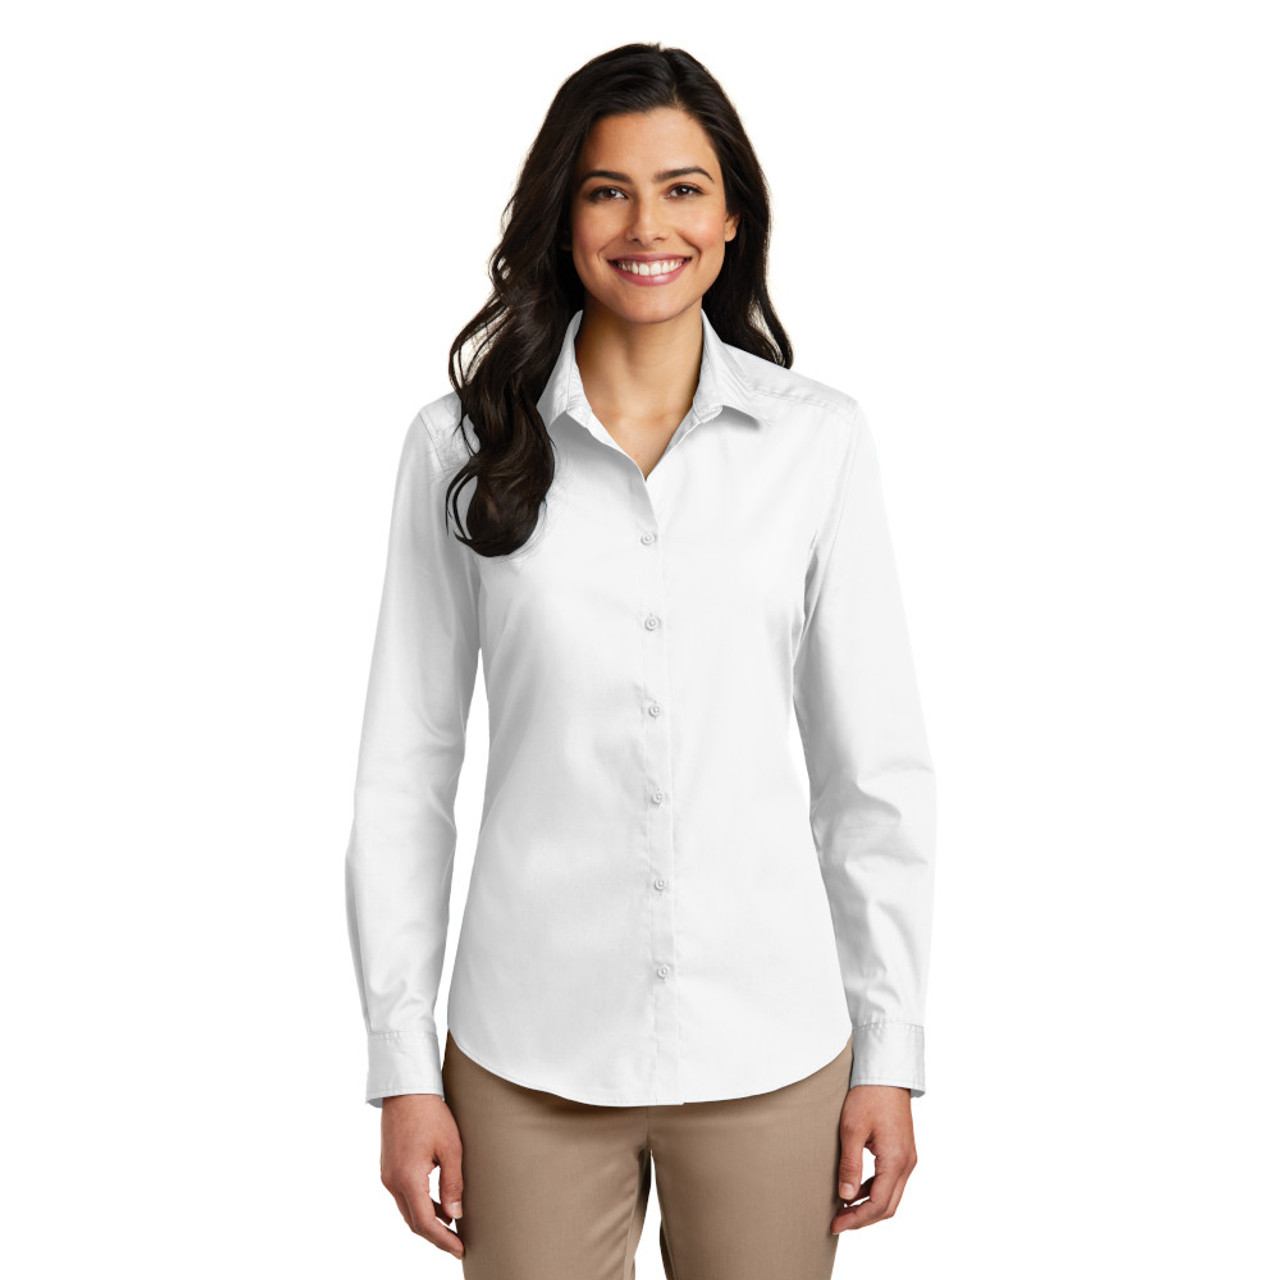 Ladies Stain Release Work Shirt